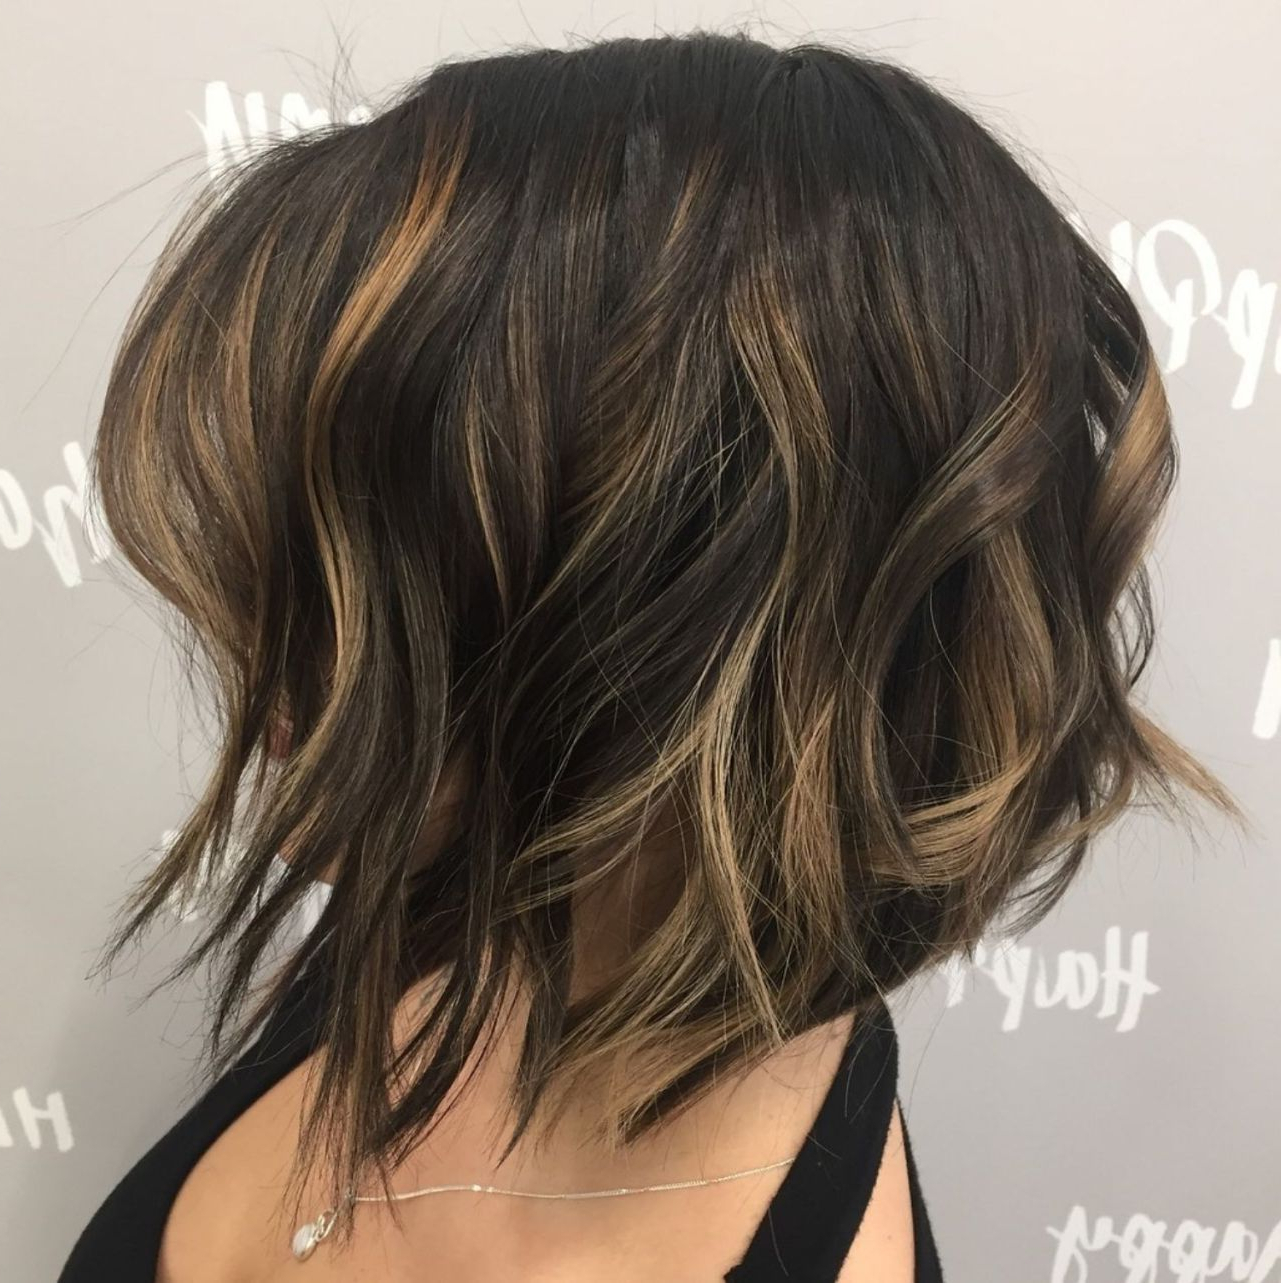 60 Messy Bob Hairstyles For Your Trendy Casual Looks | Hair With Regard To Inverted Brunette Bob Hairstyles With Messy Curls (View 14 of 25)